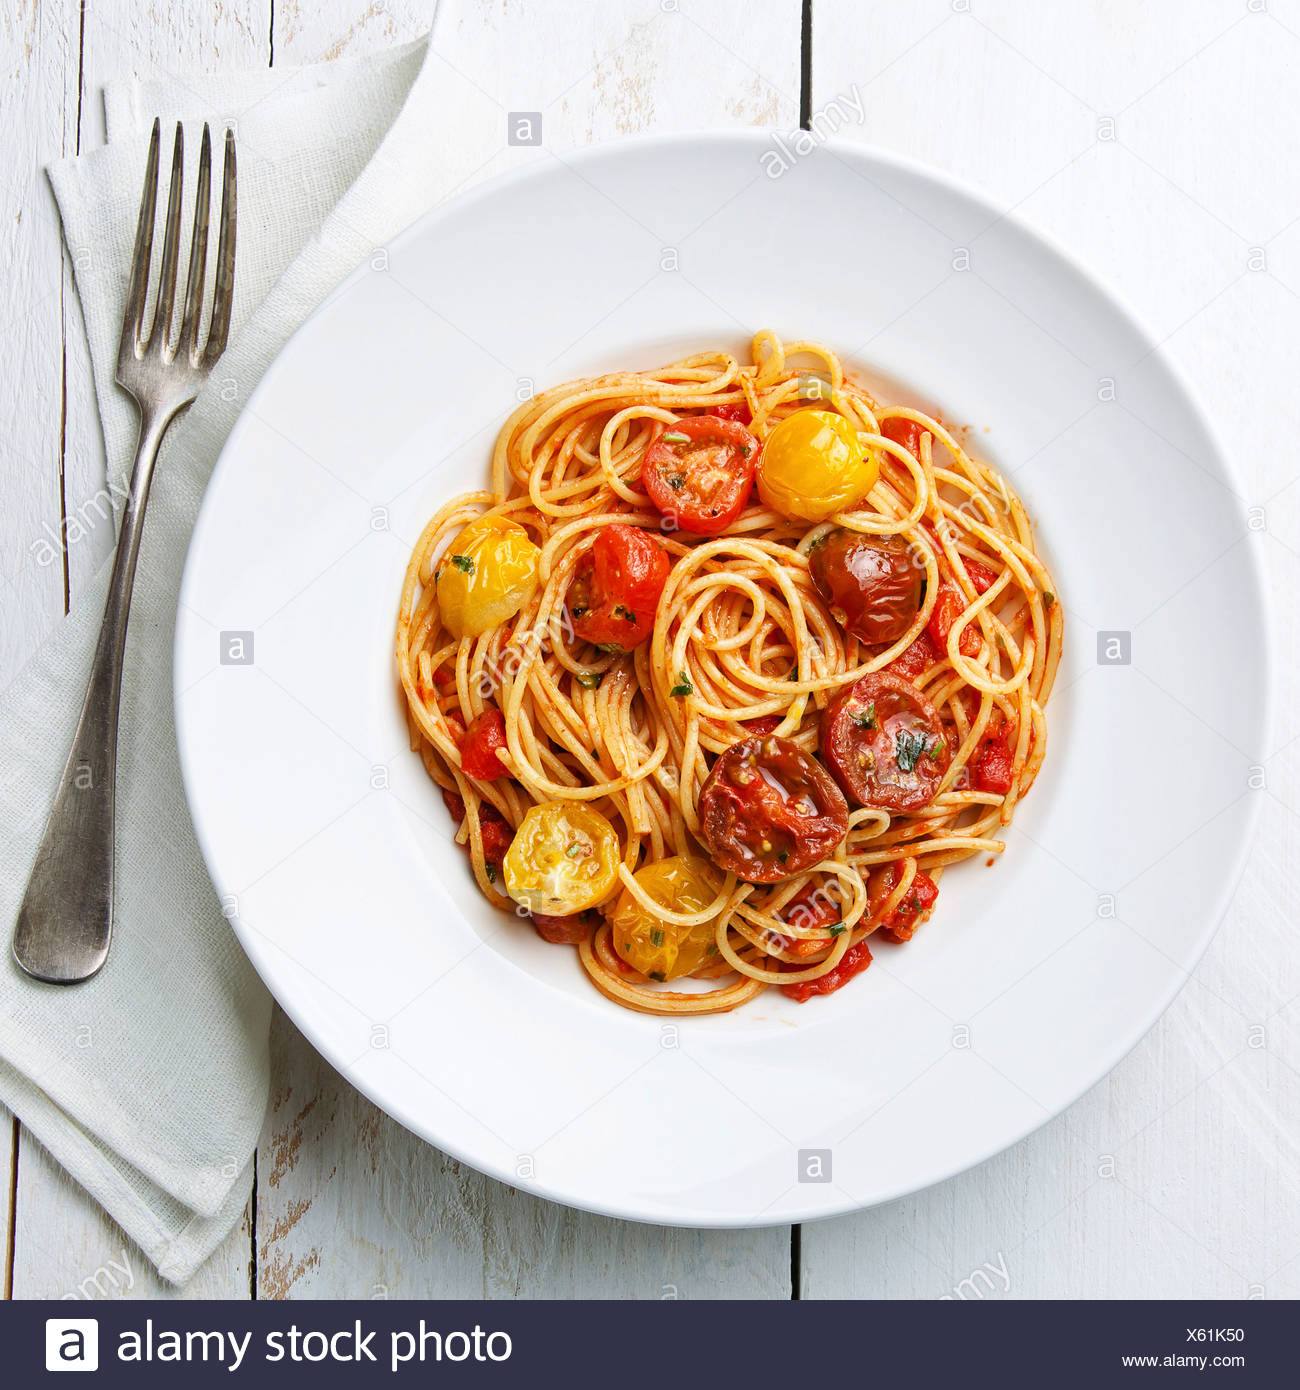 Spaghetti with tomato sauce on white wooden background - Stock Image